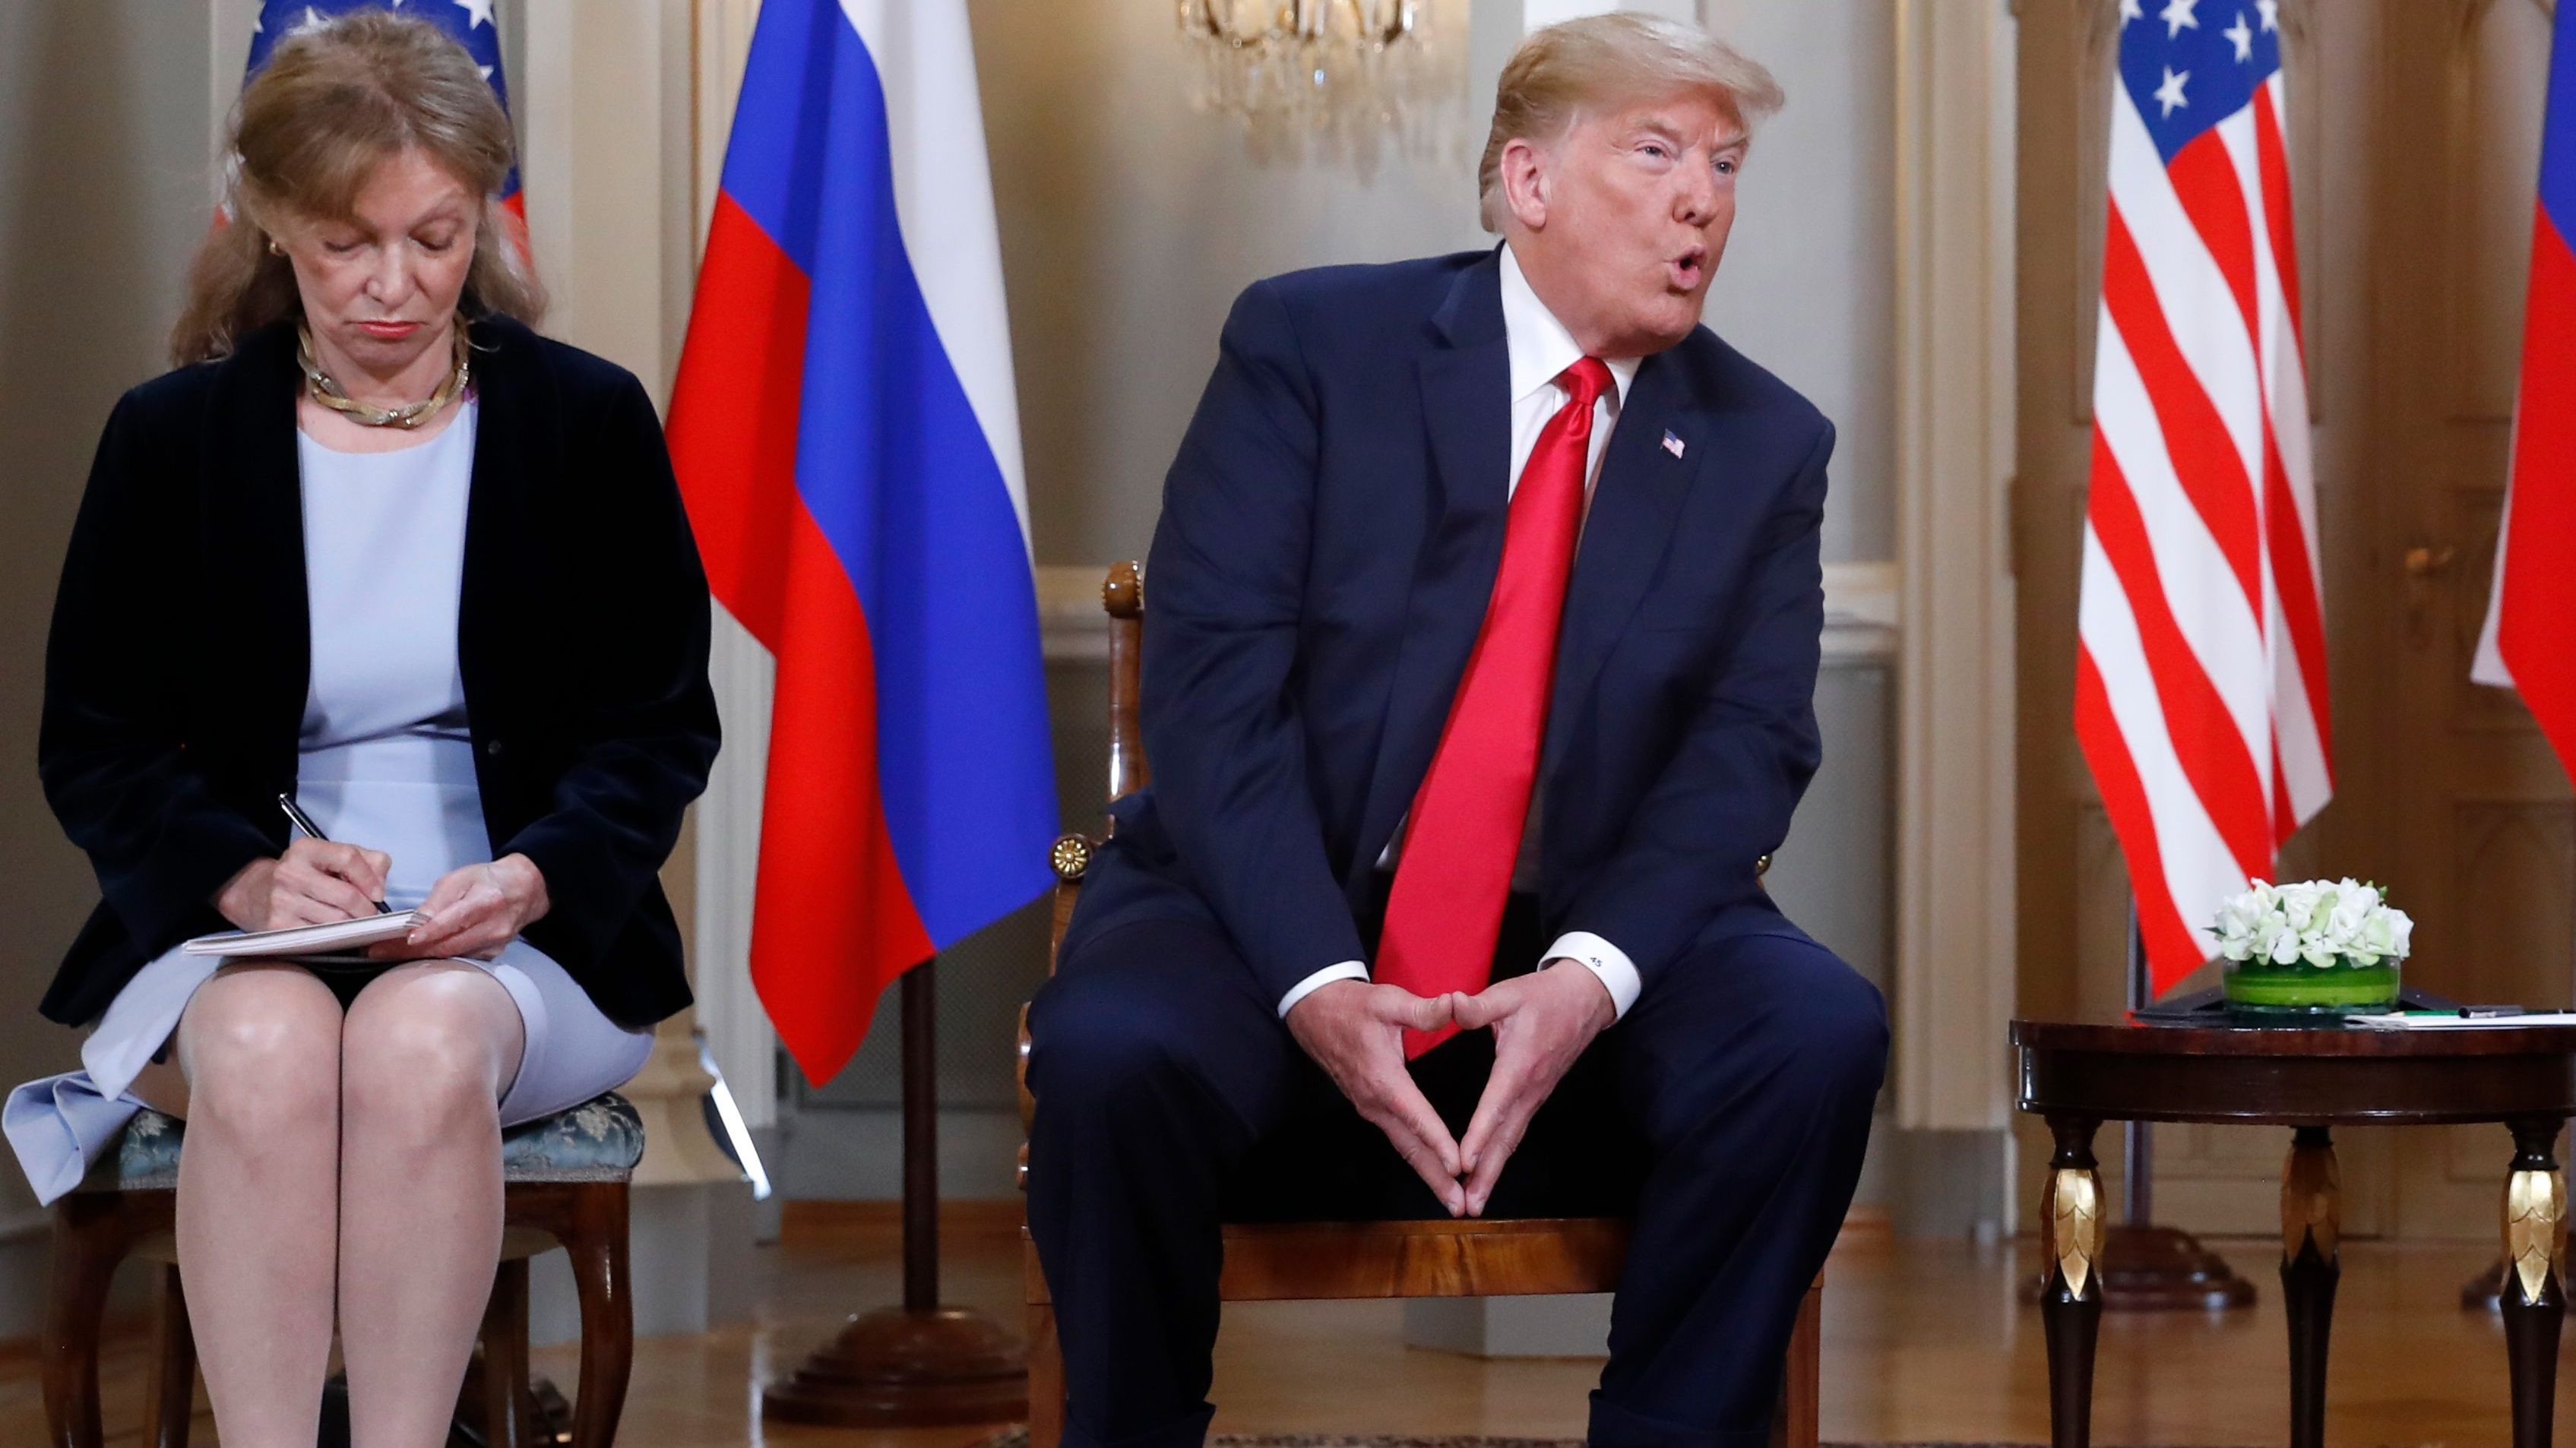 Marina Gross, left, takes notes when U.S. President Donald Trump talks to Russian President Vladimir Putin at the beginning of their one-on-one-meeting at the Presidential Palace in Helsinki, Finland, Monday, July 16, 2018. (AP Photo/Pablo Martinez Monsivais)